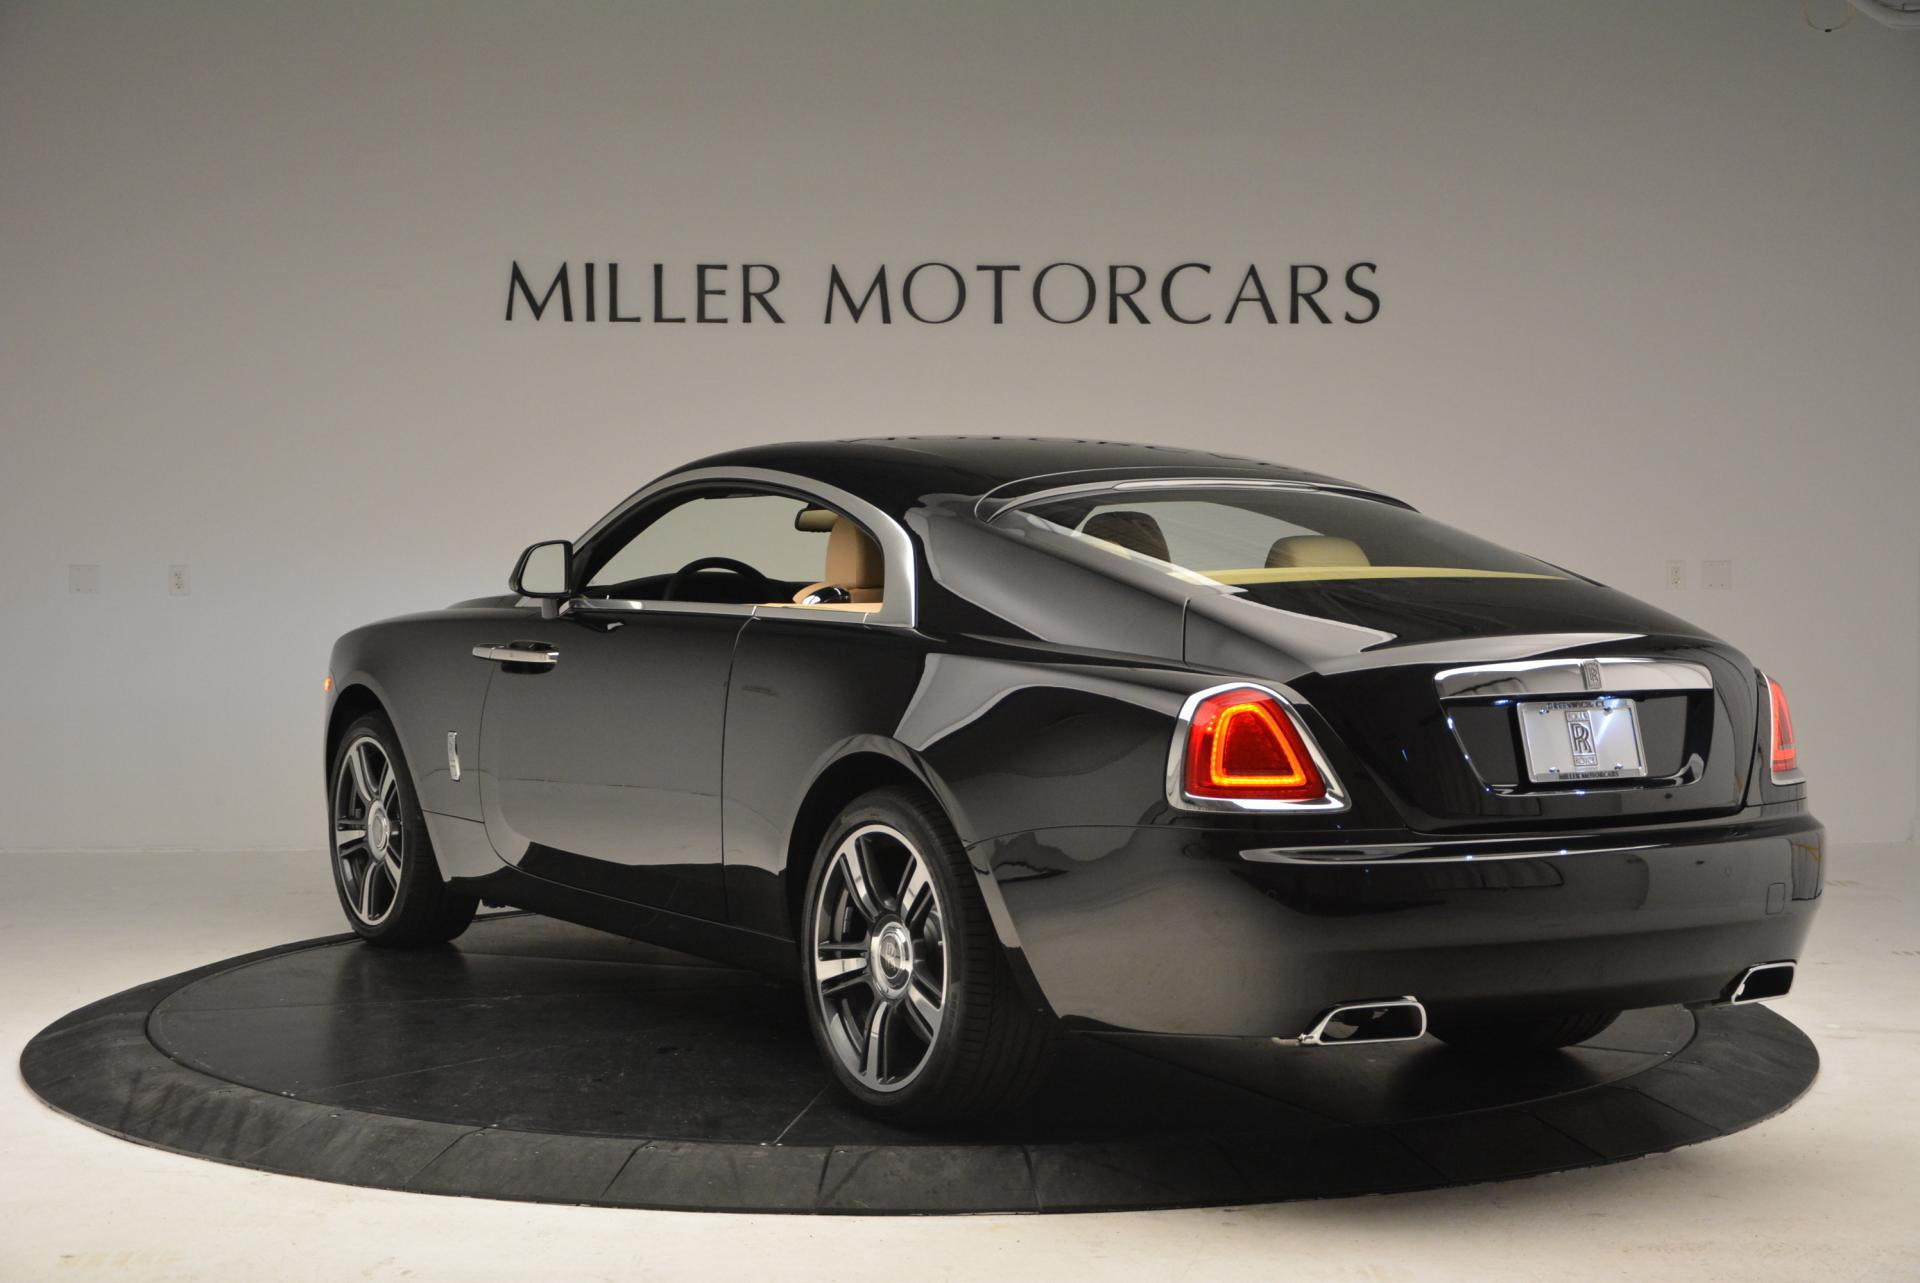 For Sale Pre Owned Rolls Royce And Bentley Cars Offered